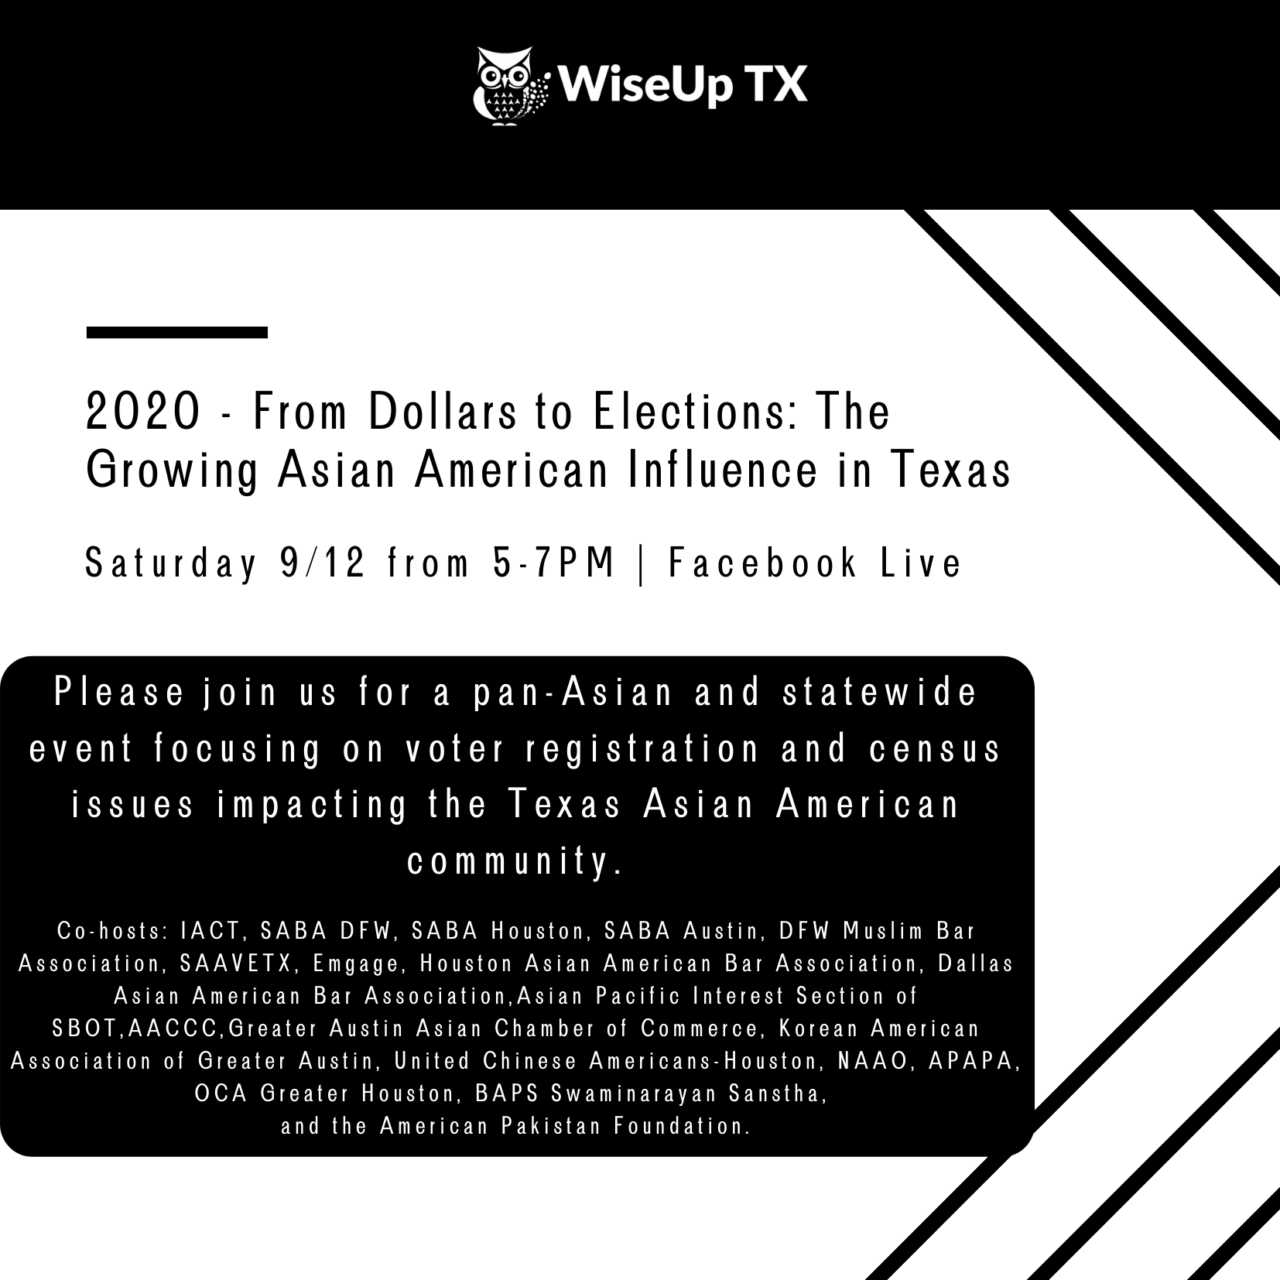 https://www.wiseuptx.org/wp-content/uploads/2020/09/2020-From-Dollars-to-Elections-1280x1280.png